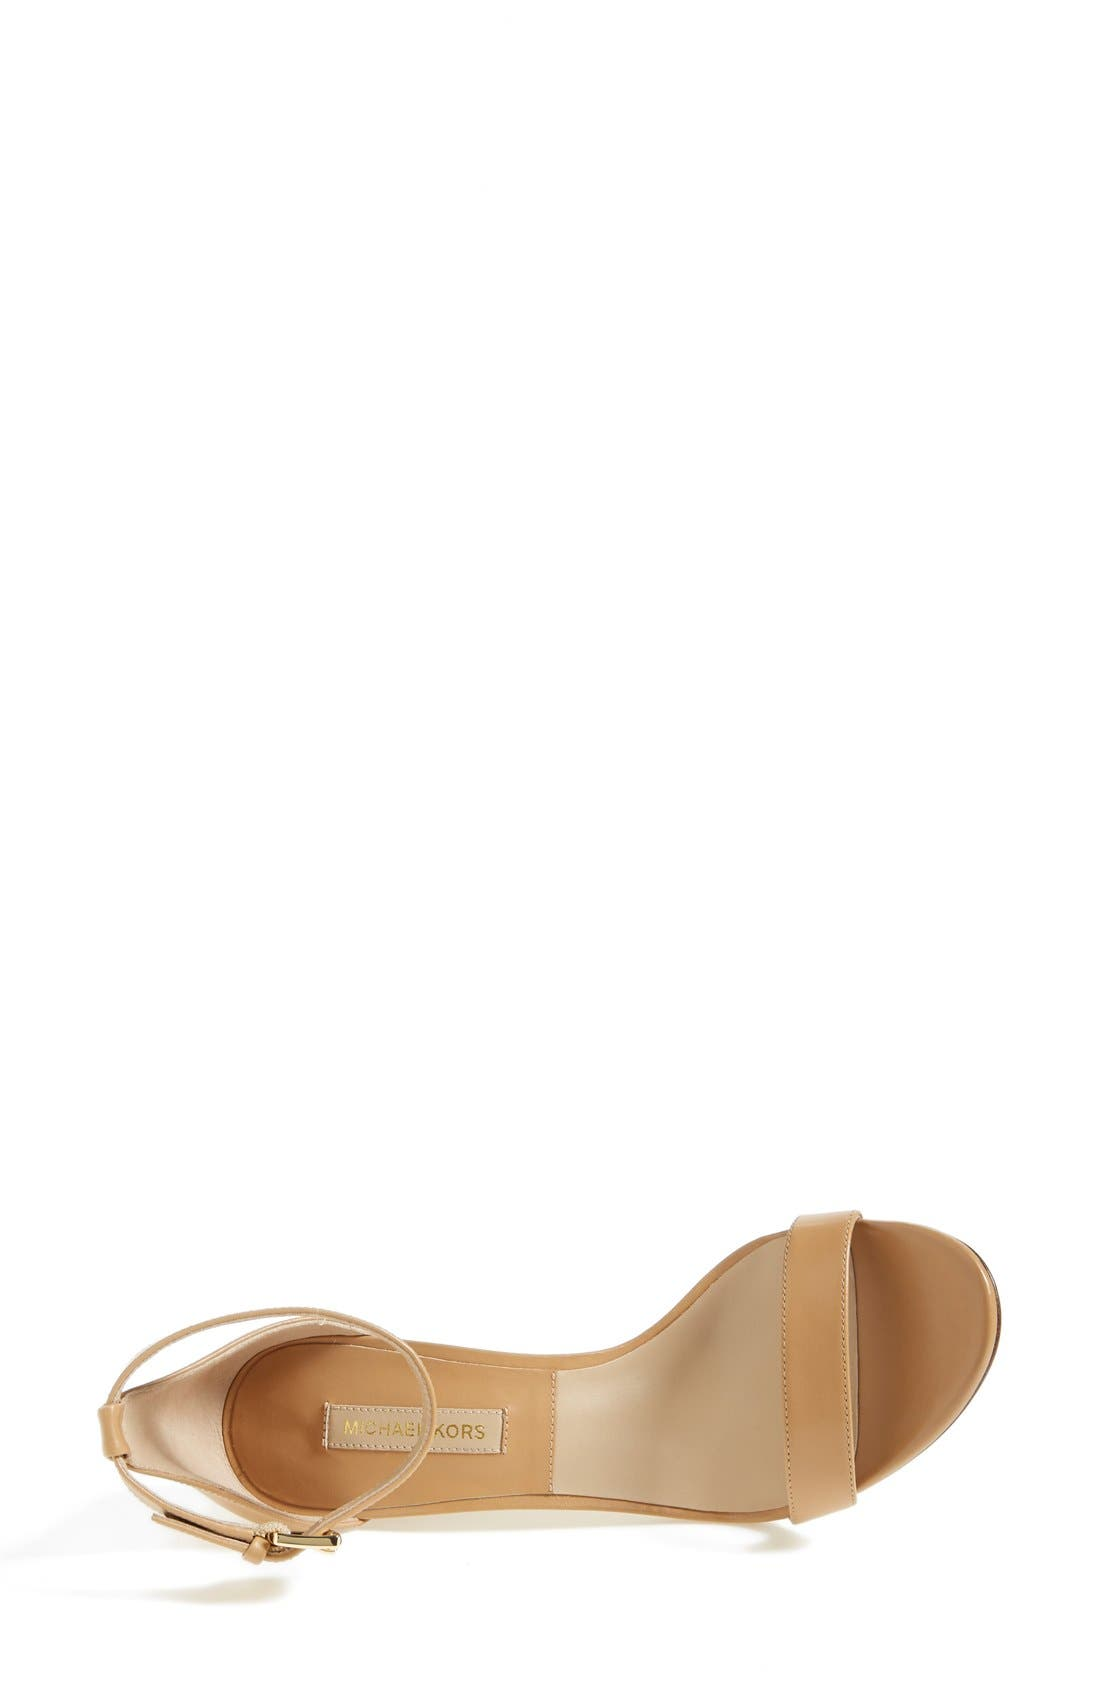 Alternate Image 3  - KORS Michael Kors 'Suri' Leather Sandal (Women)